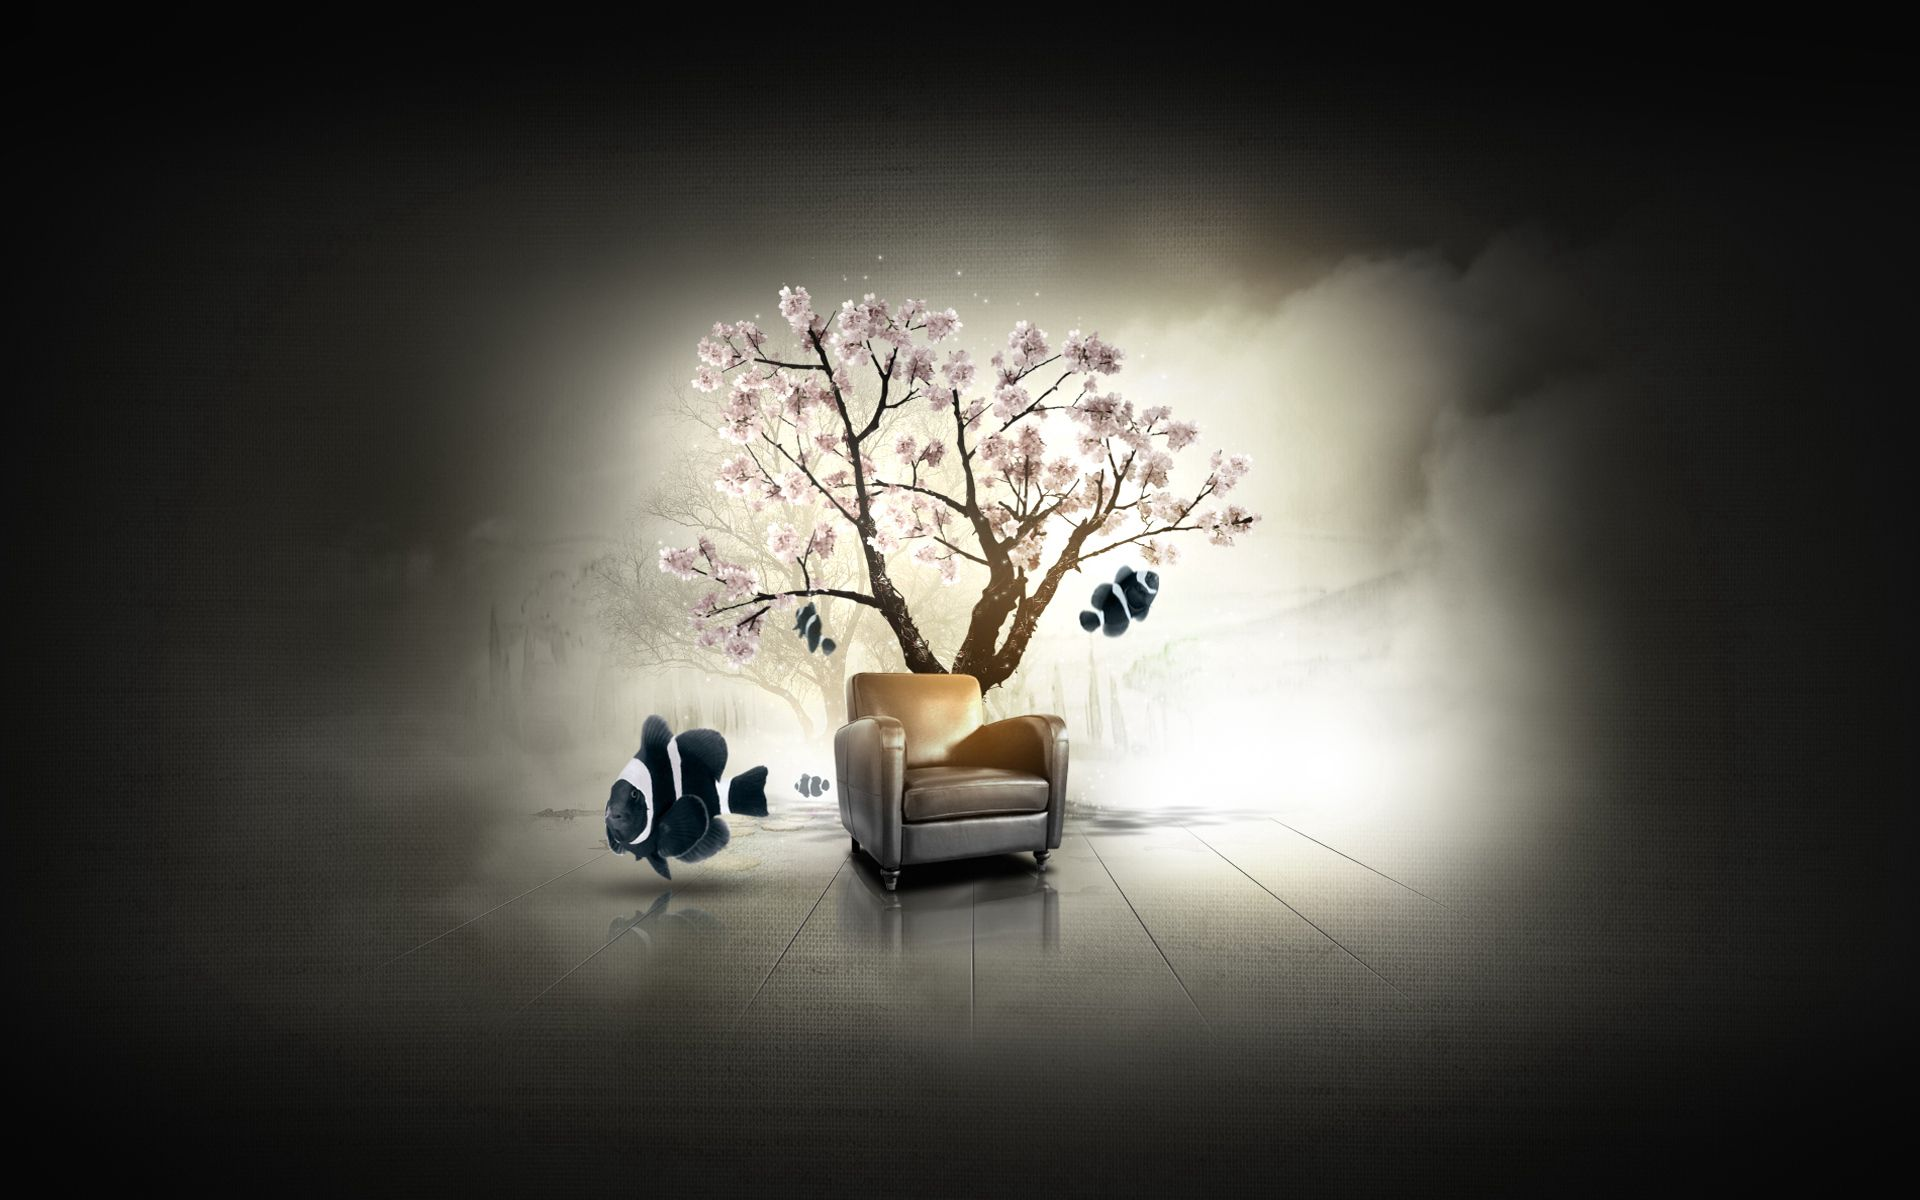 84754 download wallpaper Art, Dilshan Arukatti, Exciting, Garden, Wood, Tree, Armchair, Fish, Fishes, Sakura screensavers and pictures for free